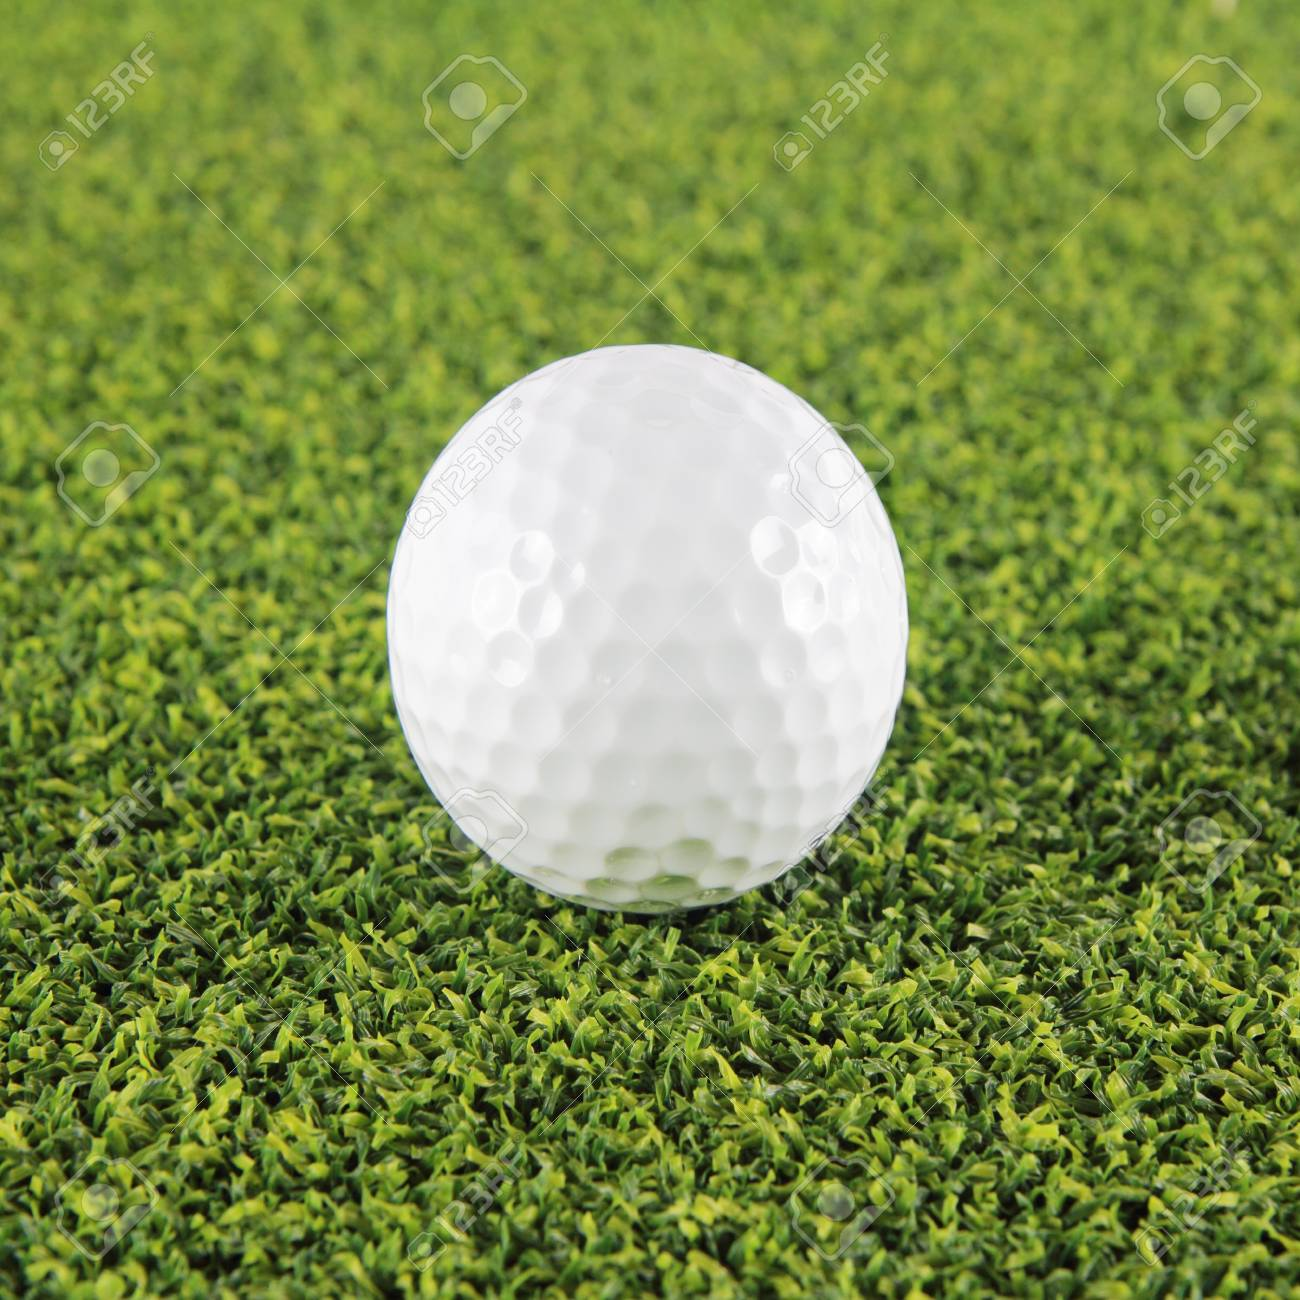 Goft ball on green grass background Stock Photo - 13661614